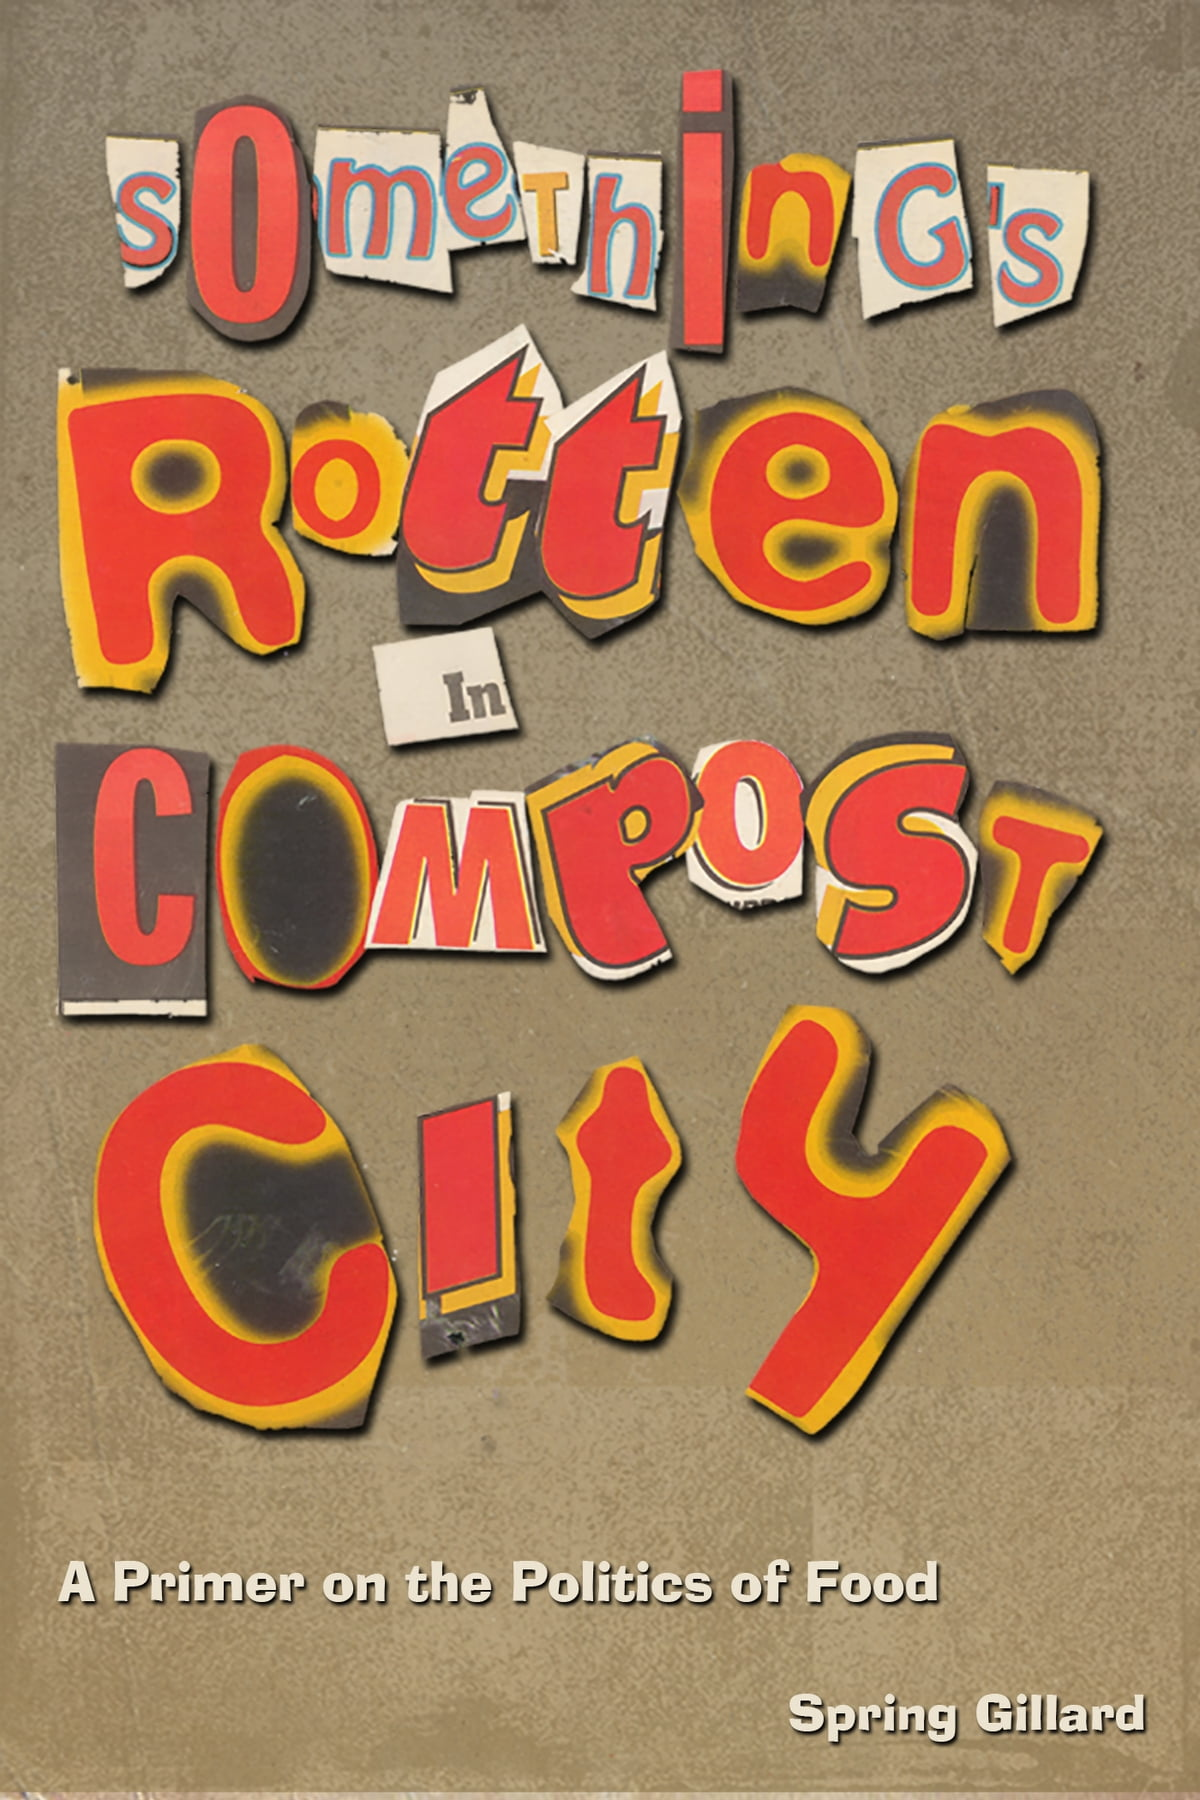 Something's Rotten Inpost City: A Primer On The Politics Of Food Ebook  By Spring Gillard  9781466148512  Kobo